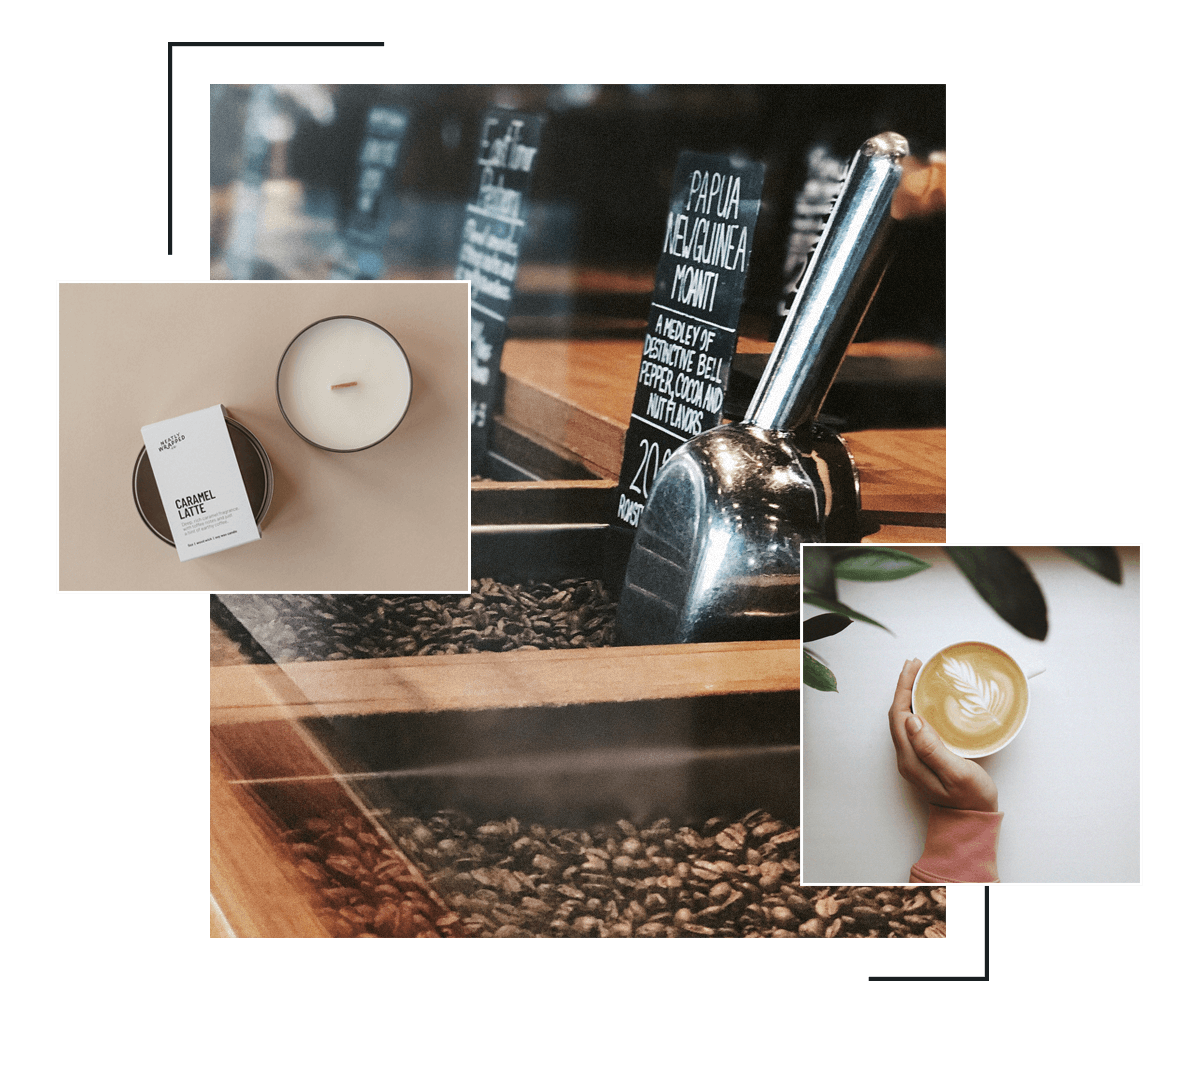 Product-Highlight-Montage-CaramelLatte-1.png